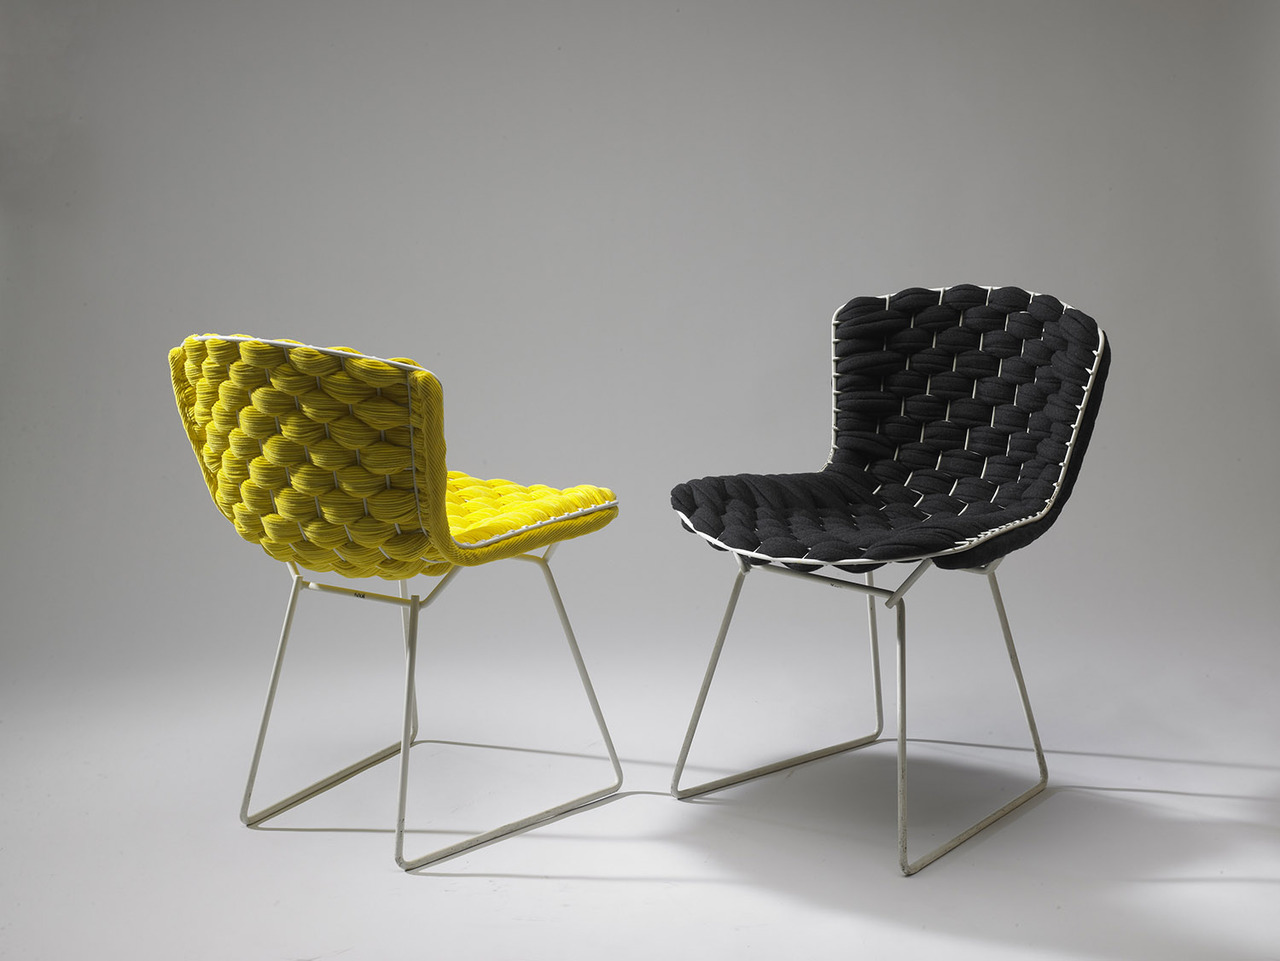 Harry Bertoia Chair Clément Brazille Reinvents The Iconic Bertoia Chair With